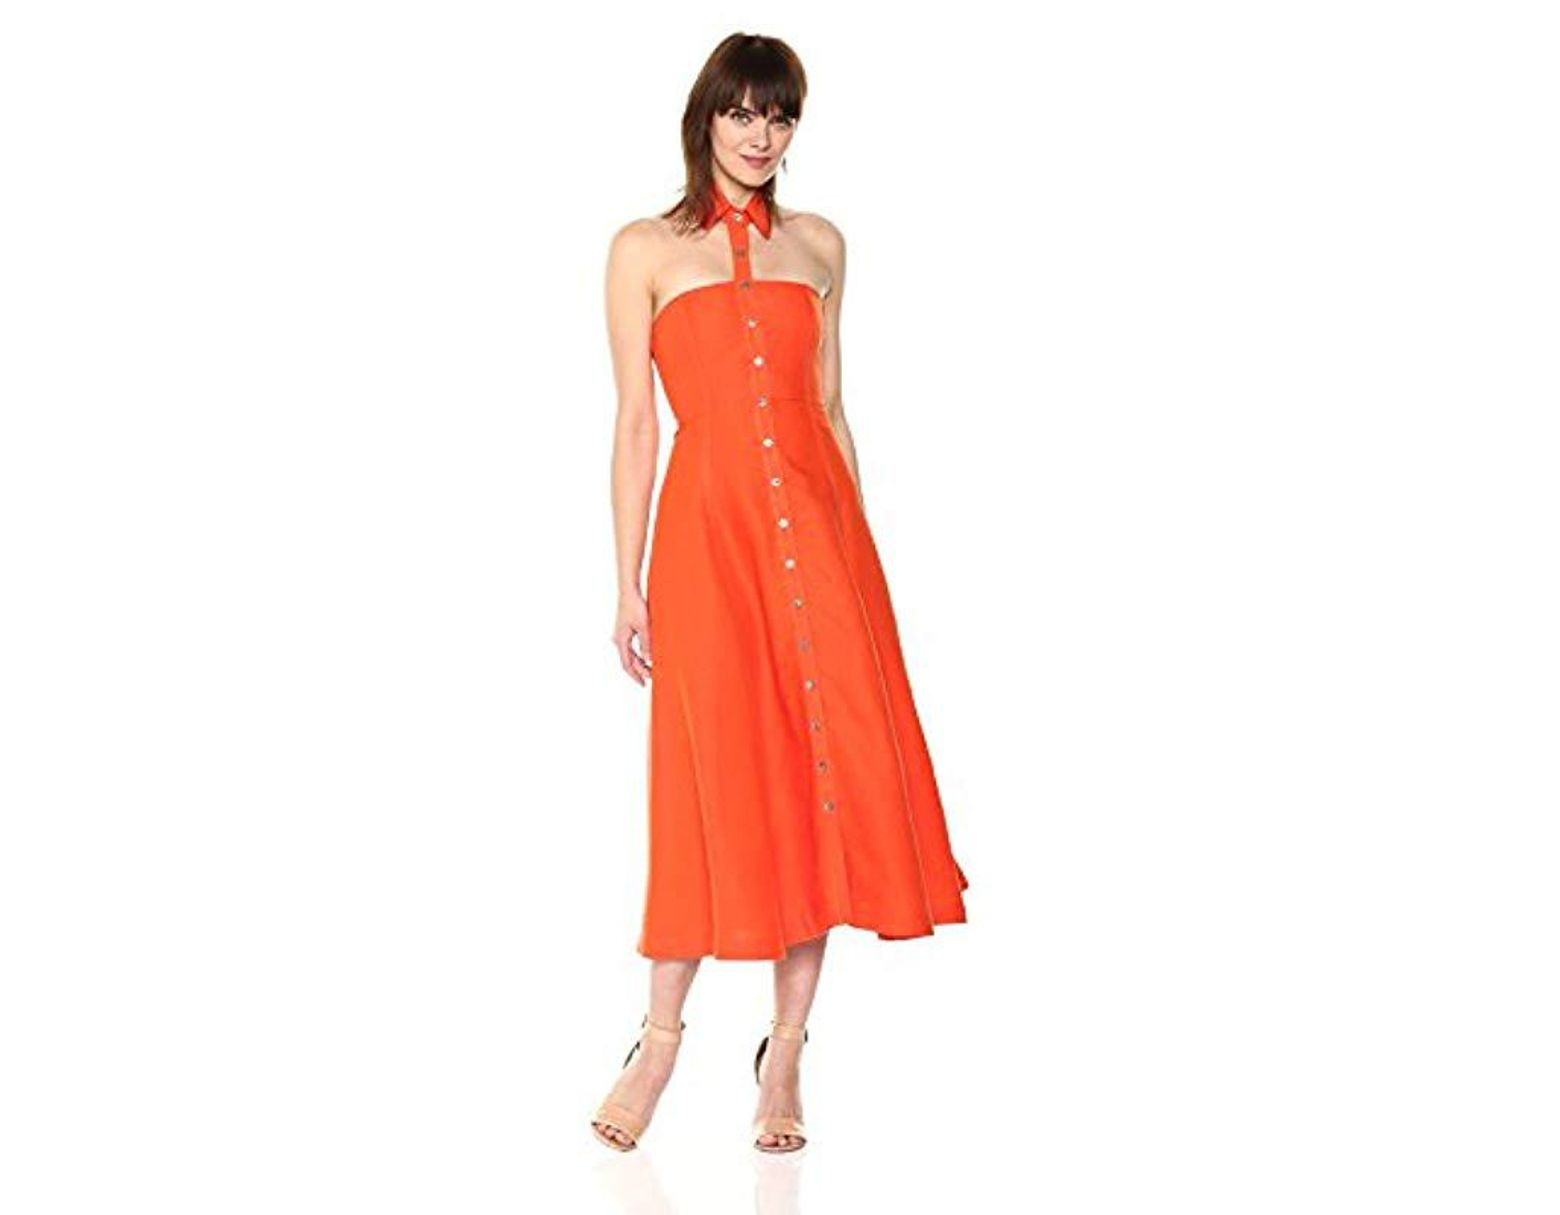 b779ee867a Mara Hoffman Veronique Button Up Floating Collar Midi Dress in Orange -  Save 58% - Lyst